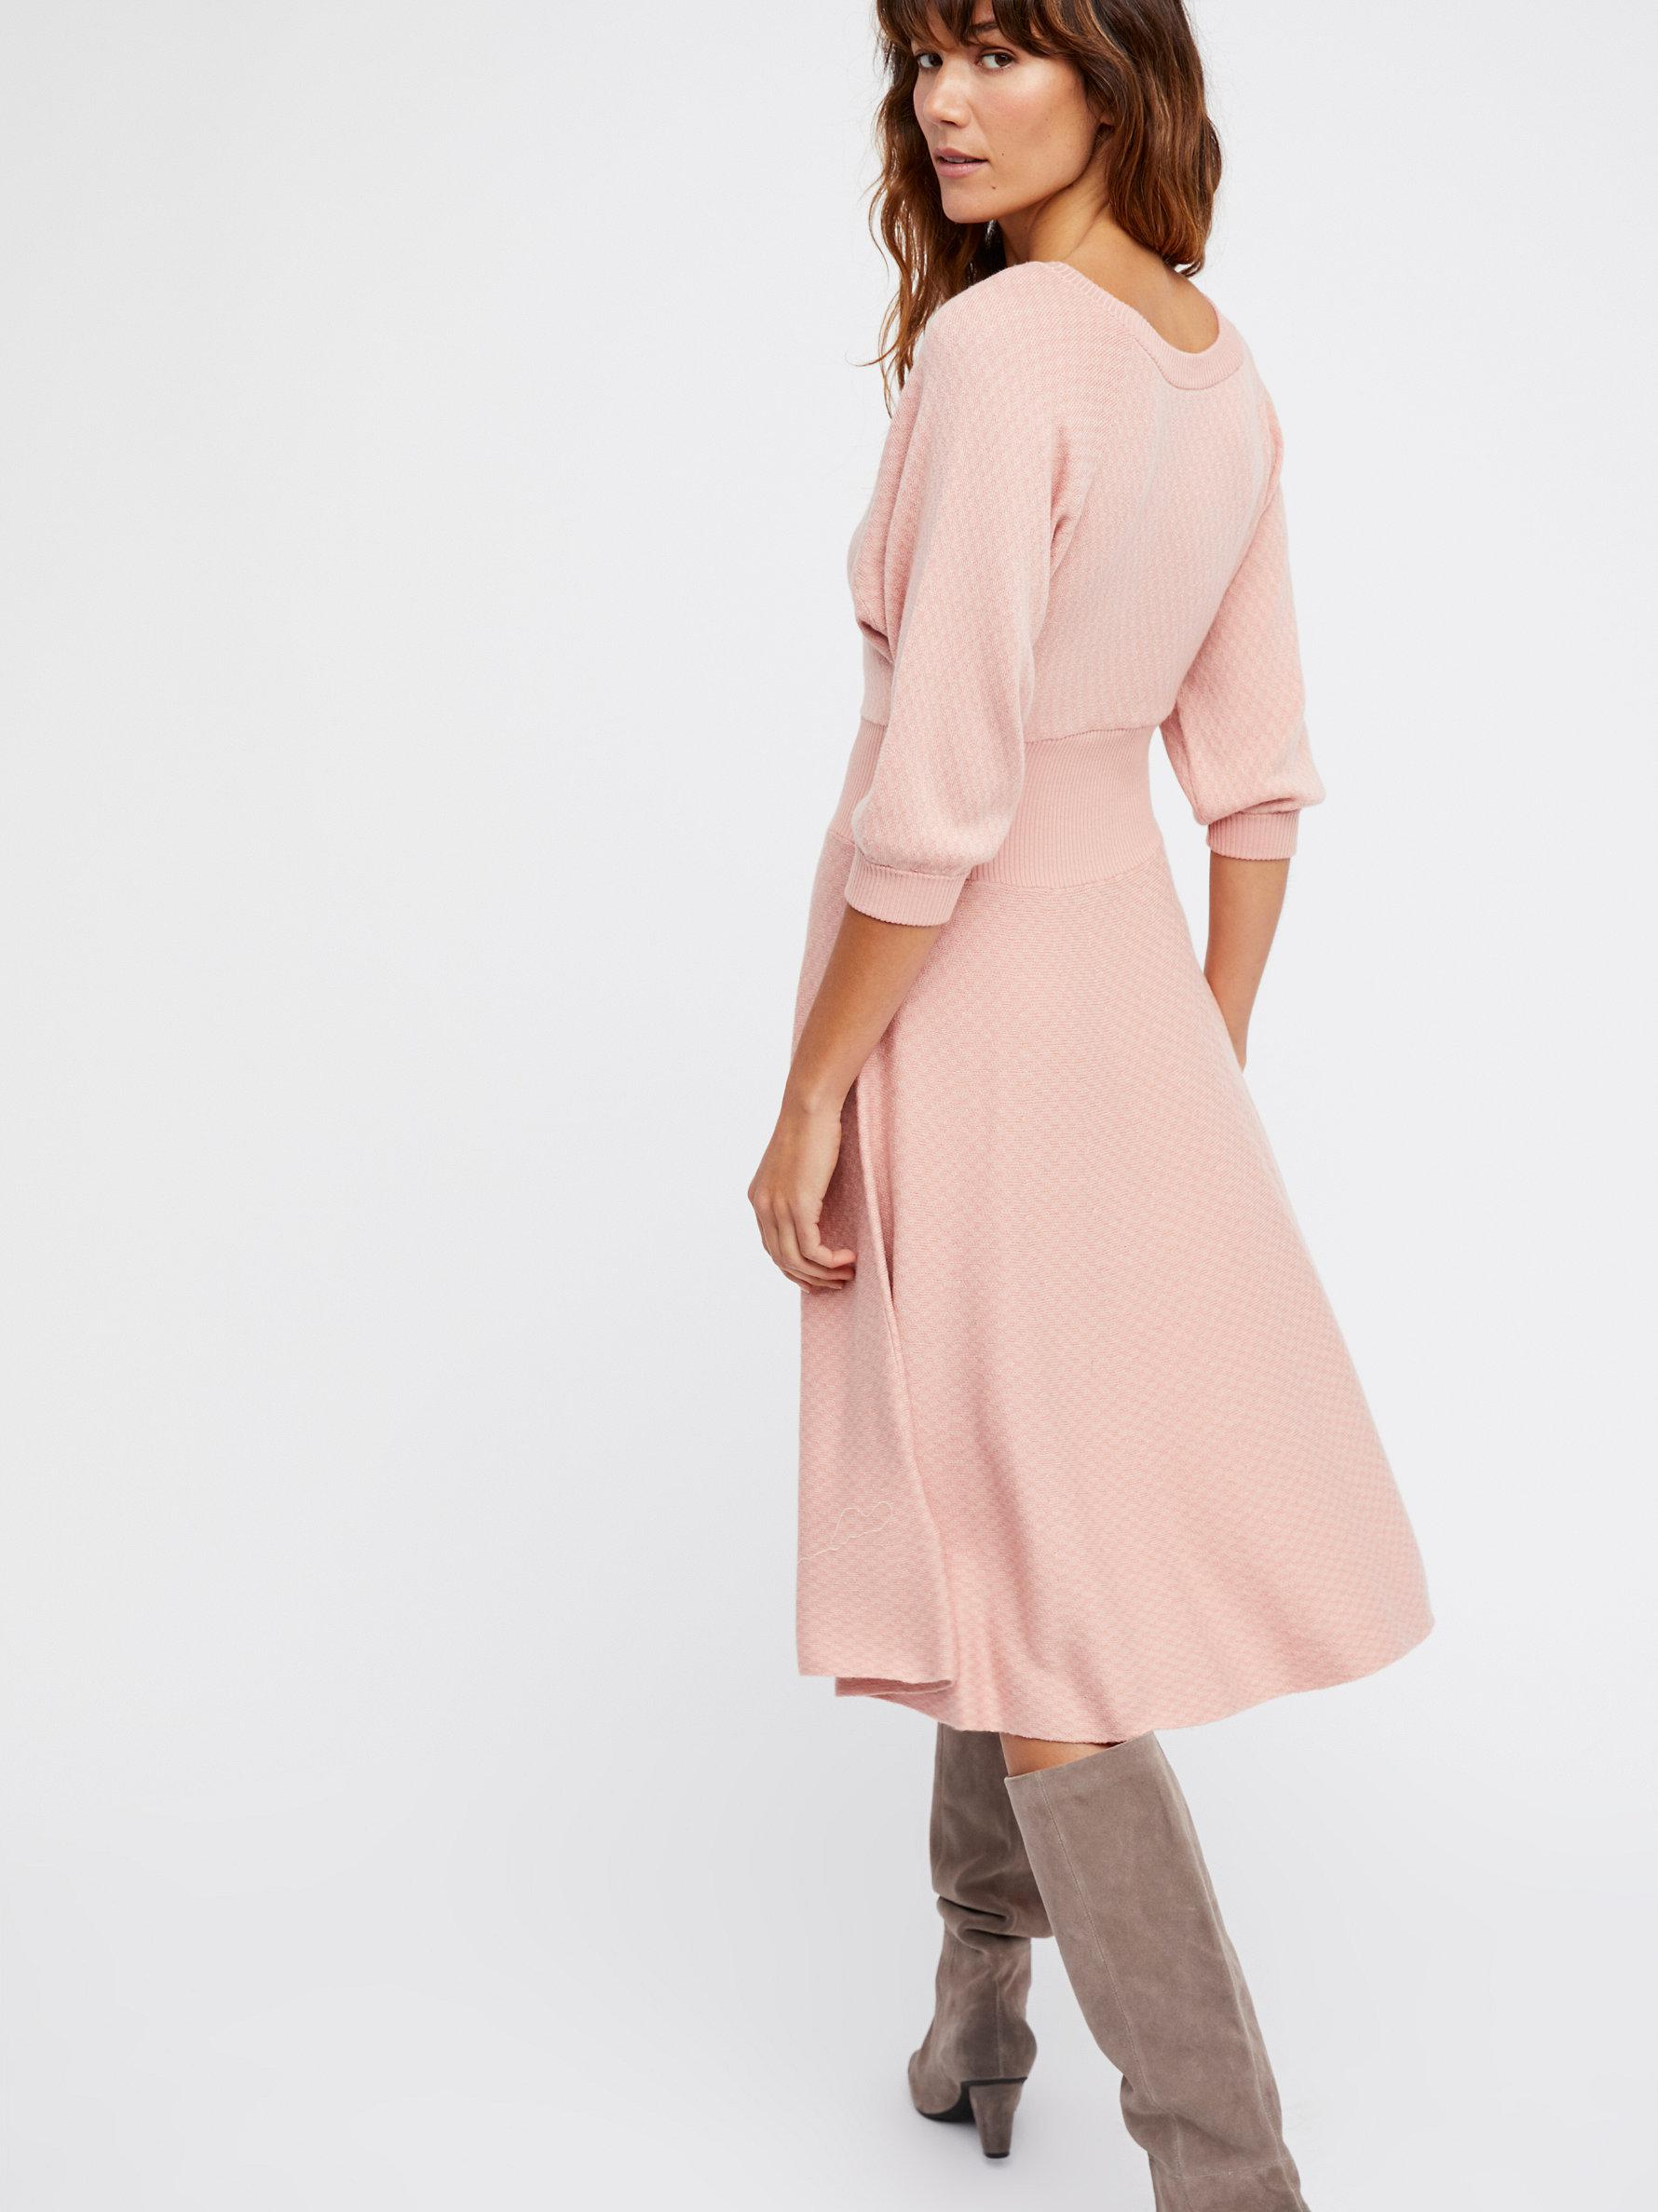 9241209eddf5 Free People Sweater Dress - Dress Foto and Picture